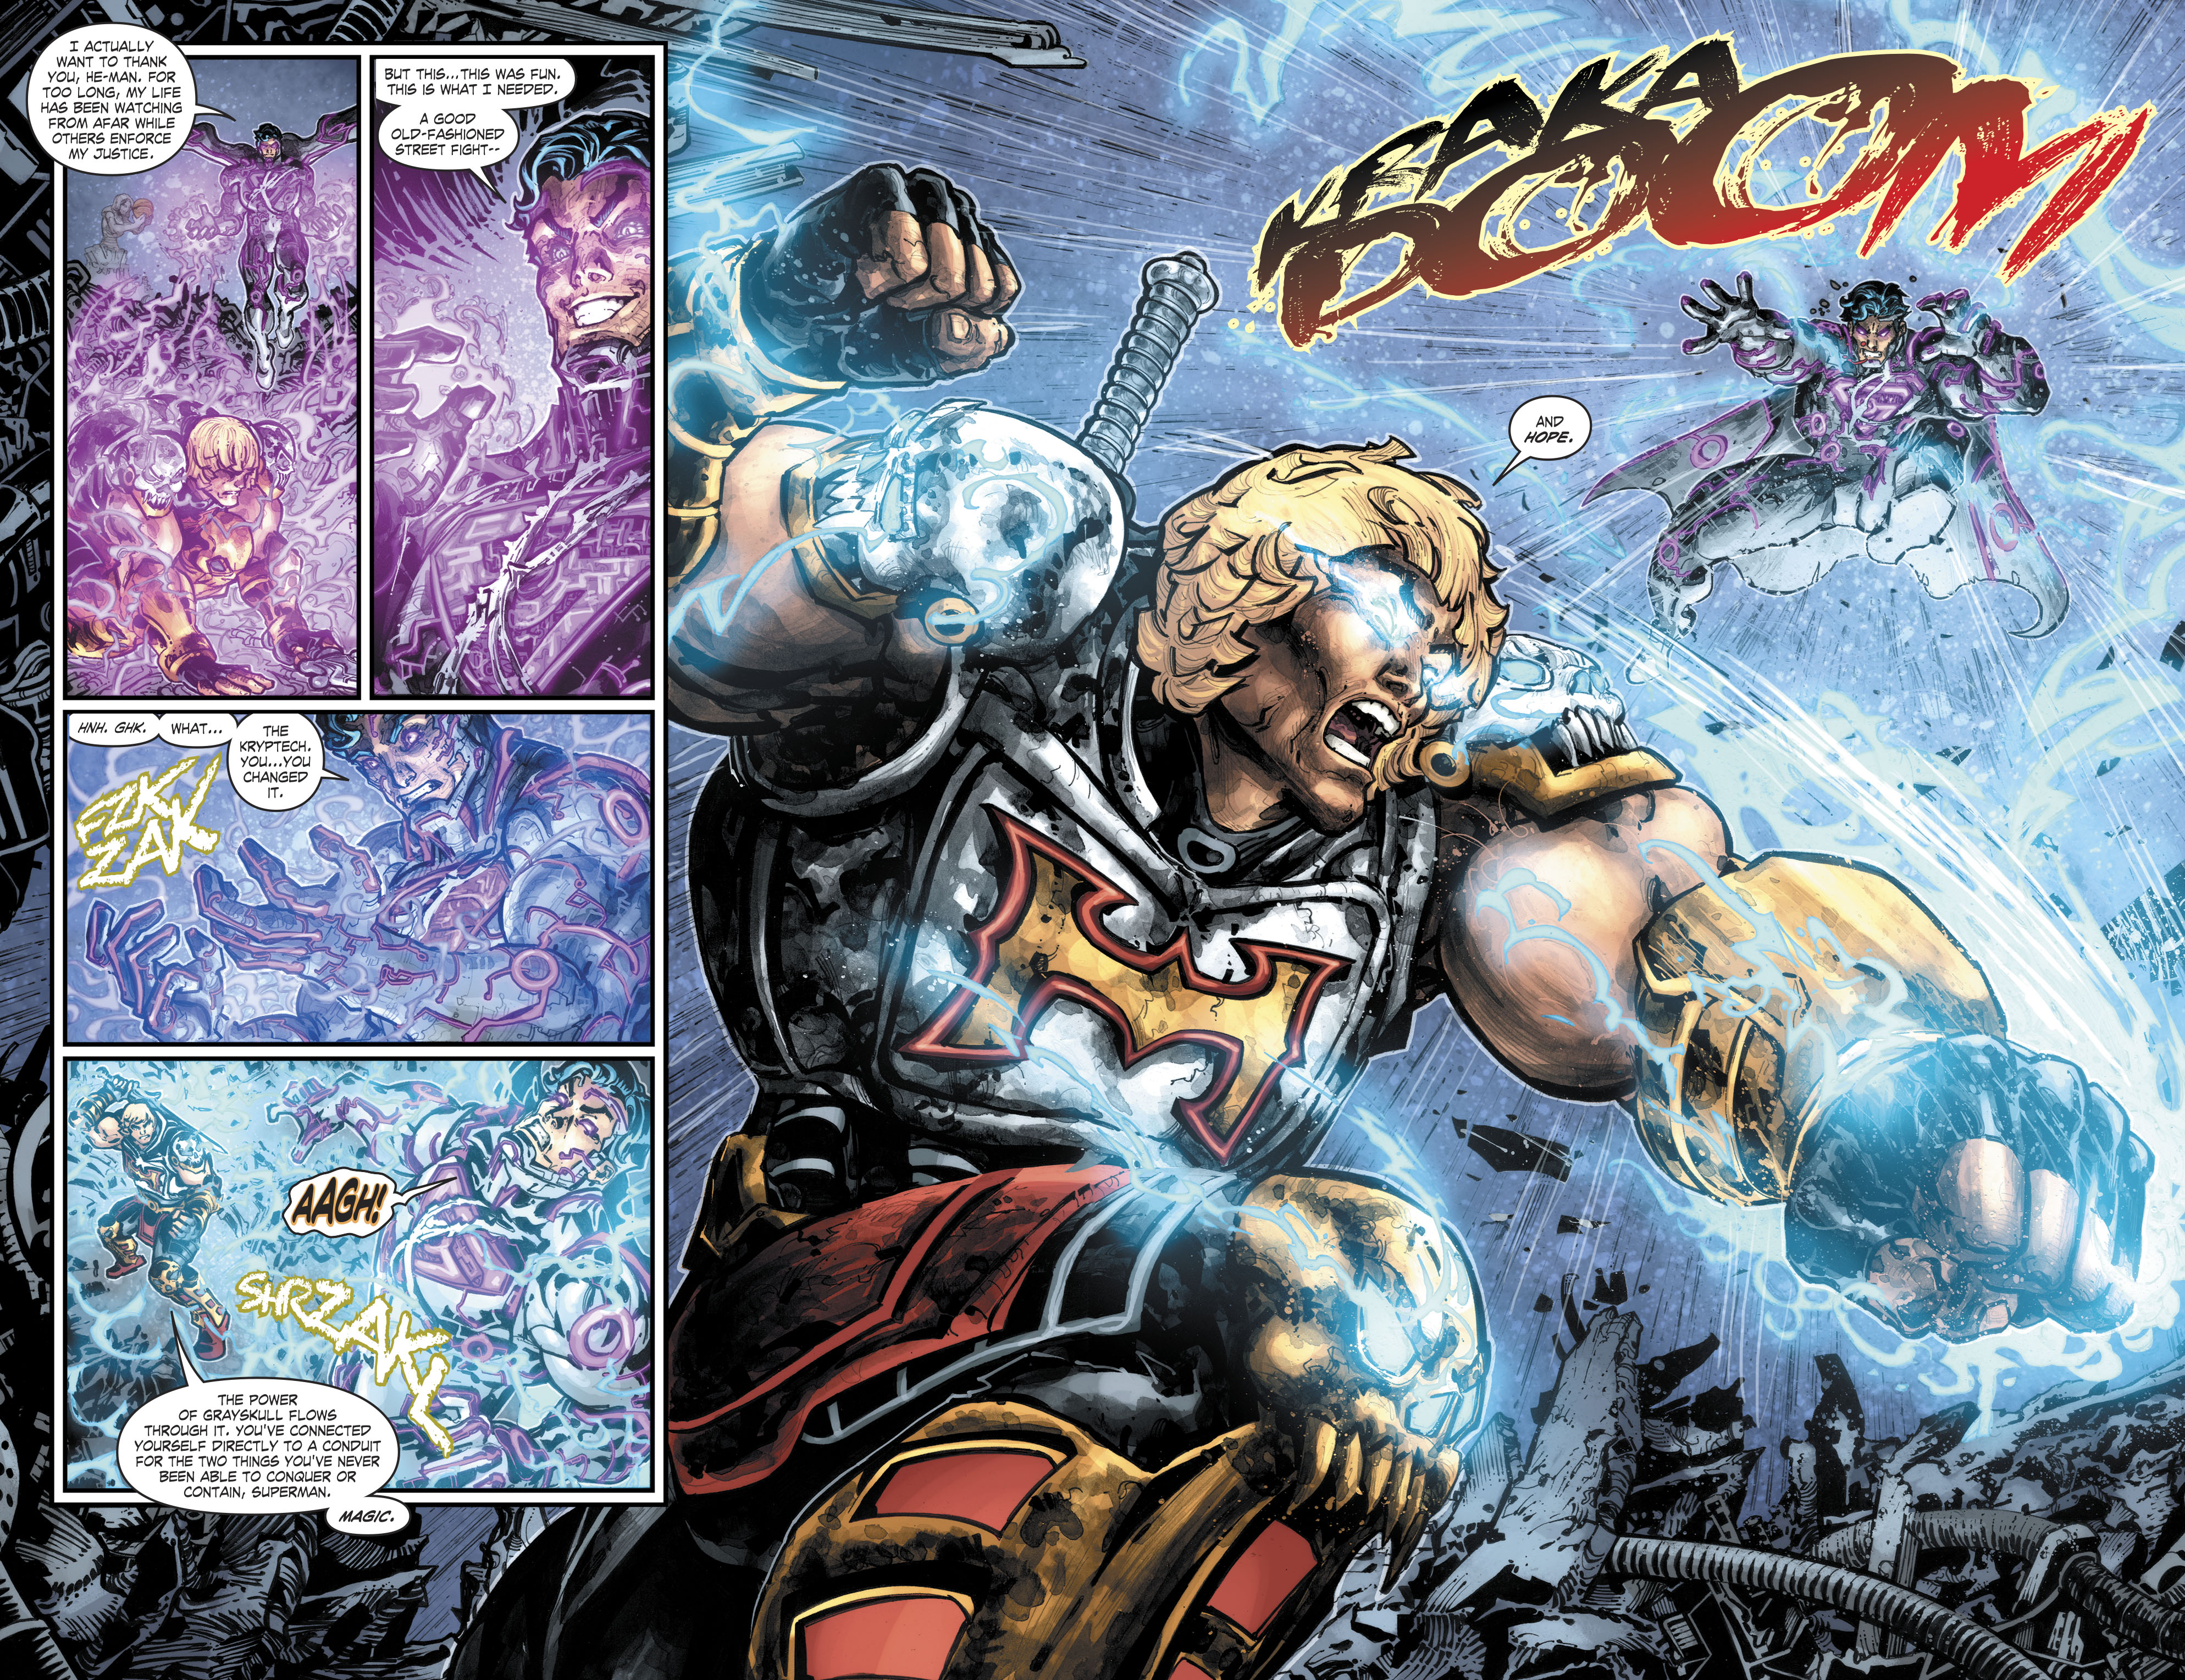 Injustice Vs Masters of the Universe 004 016